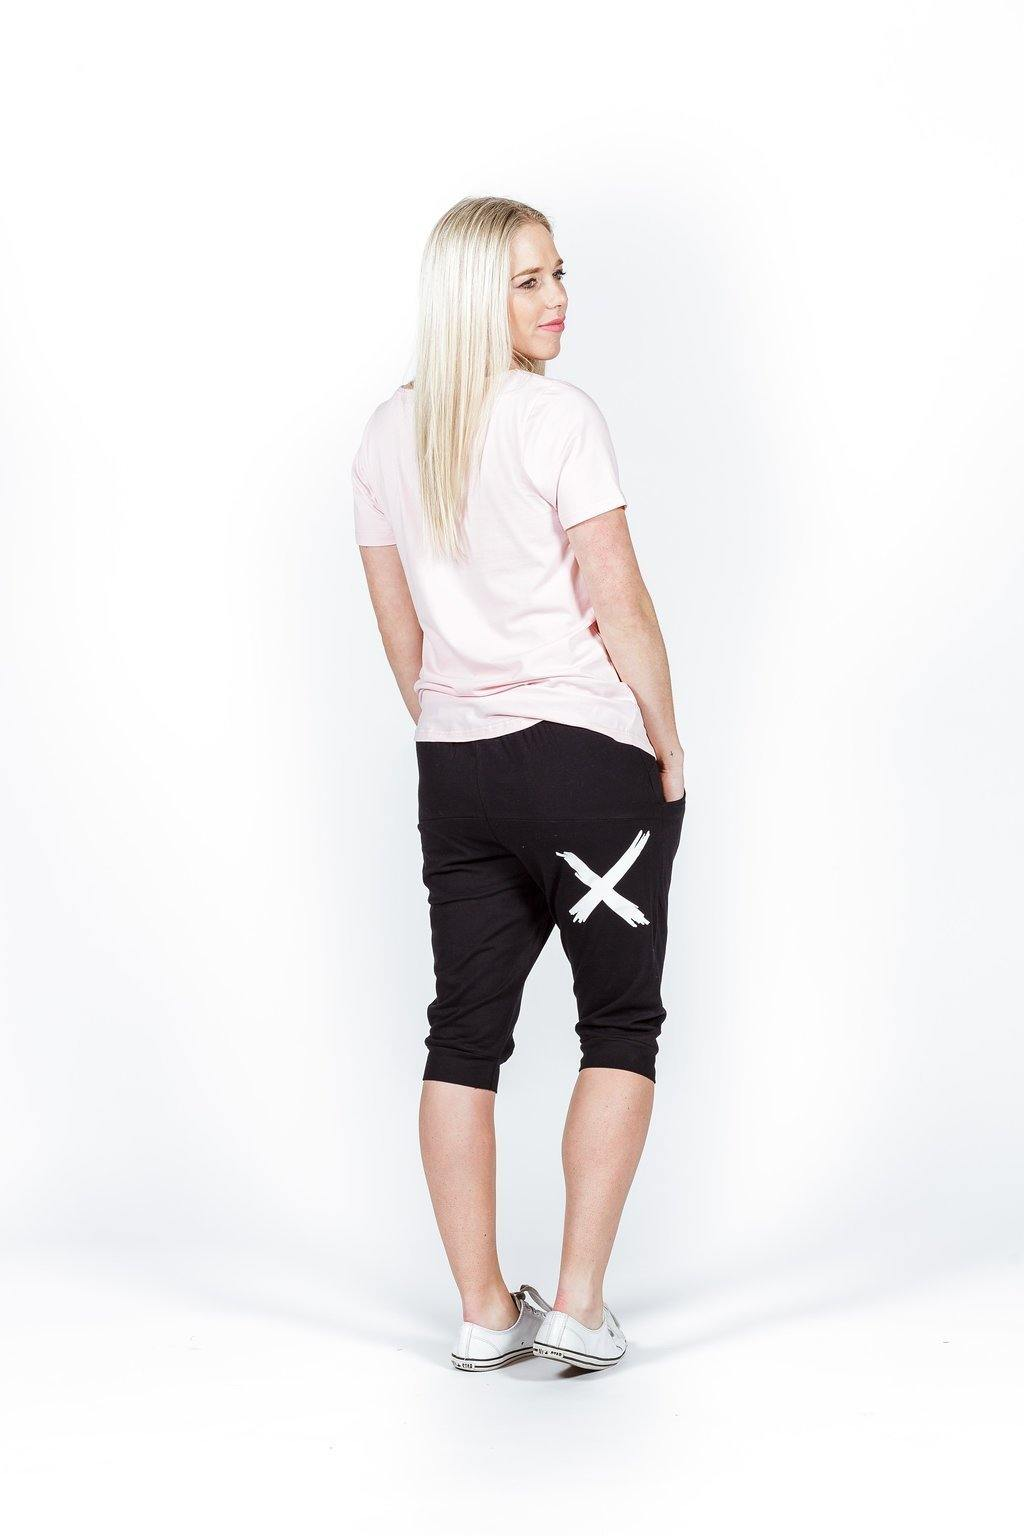 Apartment Pants- 3/4 White Cross - HOMELEE - allaboutagirl